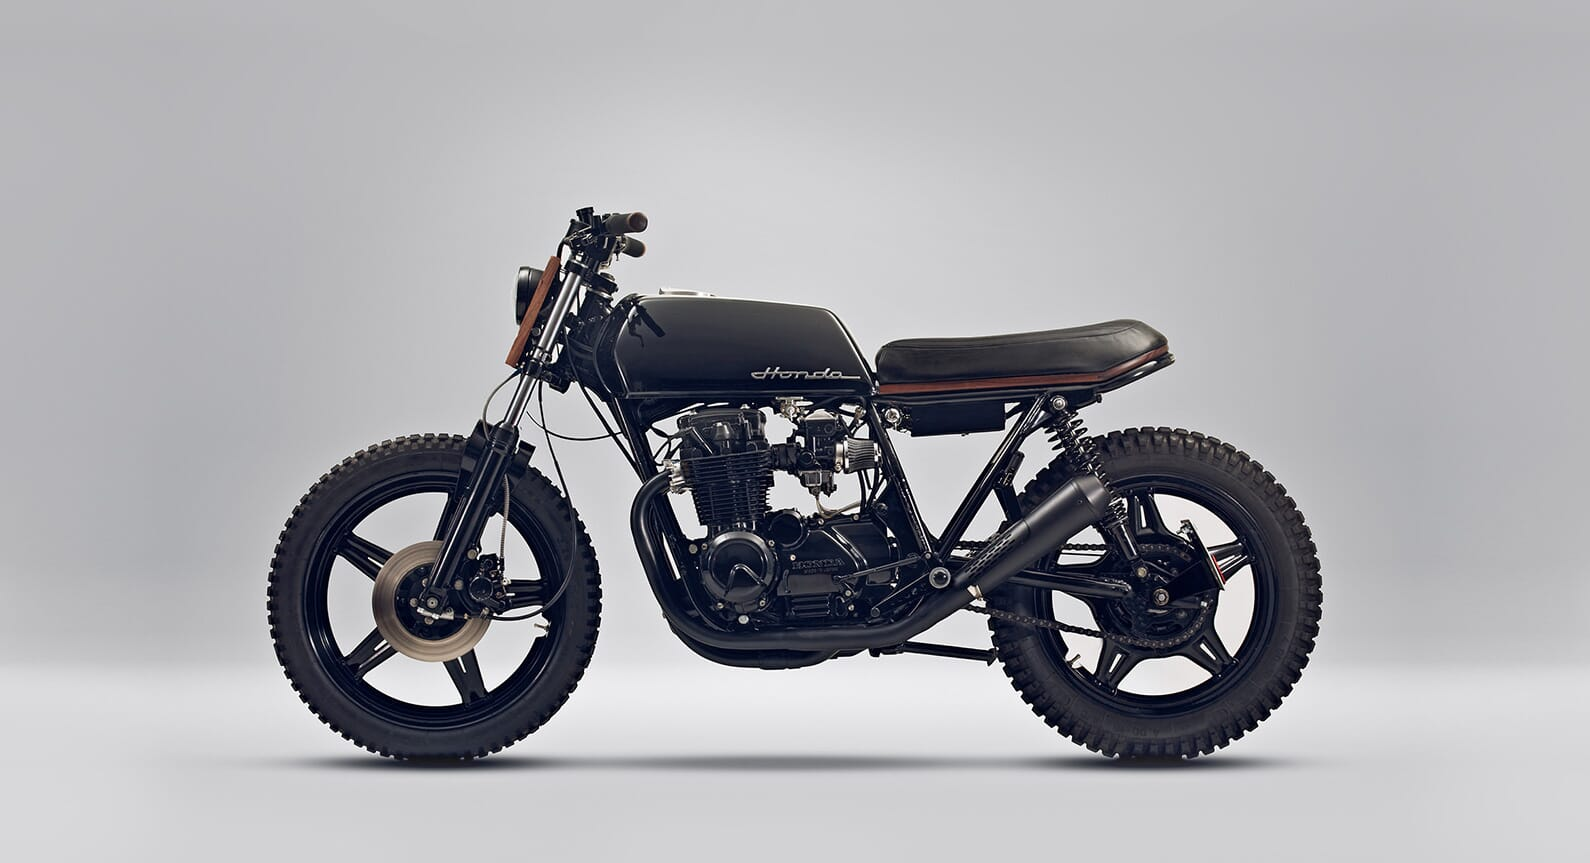 You Won't Find A Better Honda CB650 Than This One